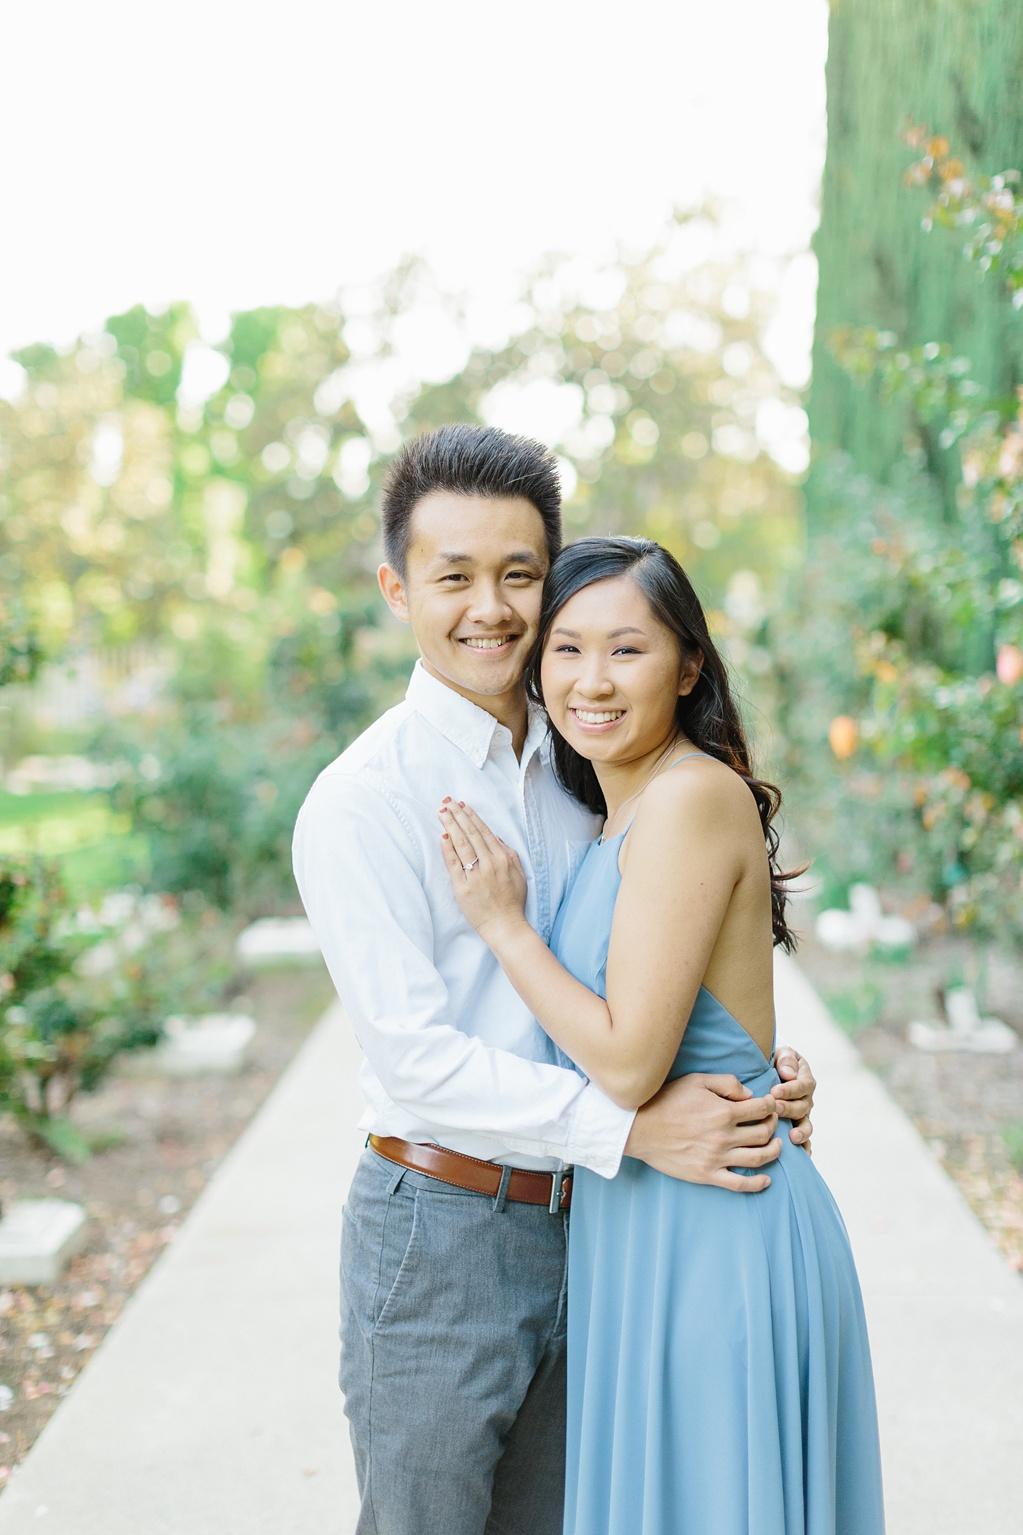 Elegant rose garden engagement shoot at Lacy Park in Pasadena by LA wedding photographer-Madison Ellis Photography (51)